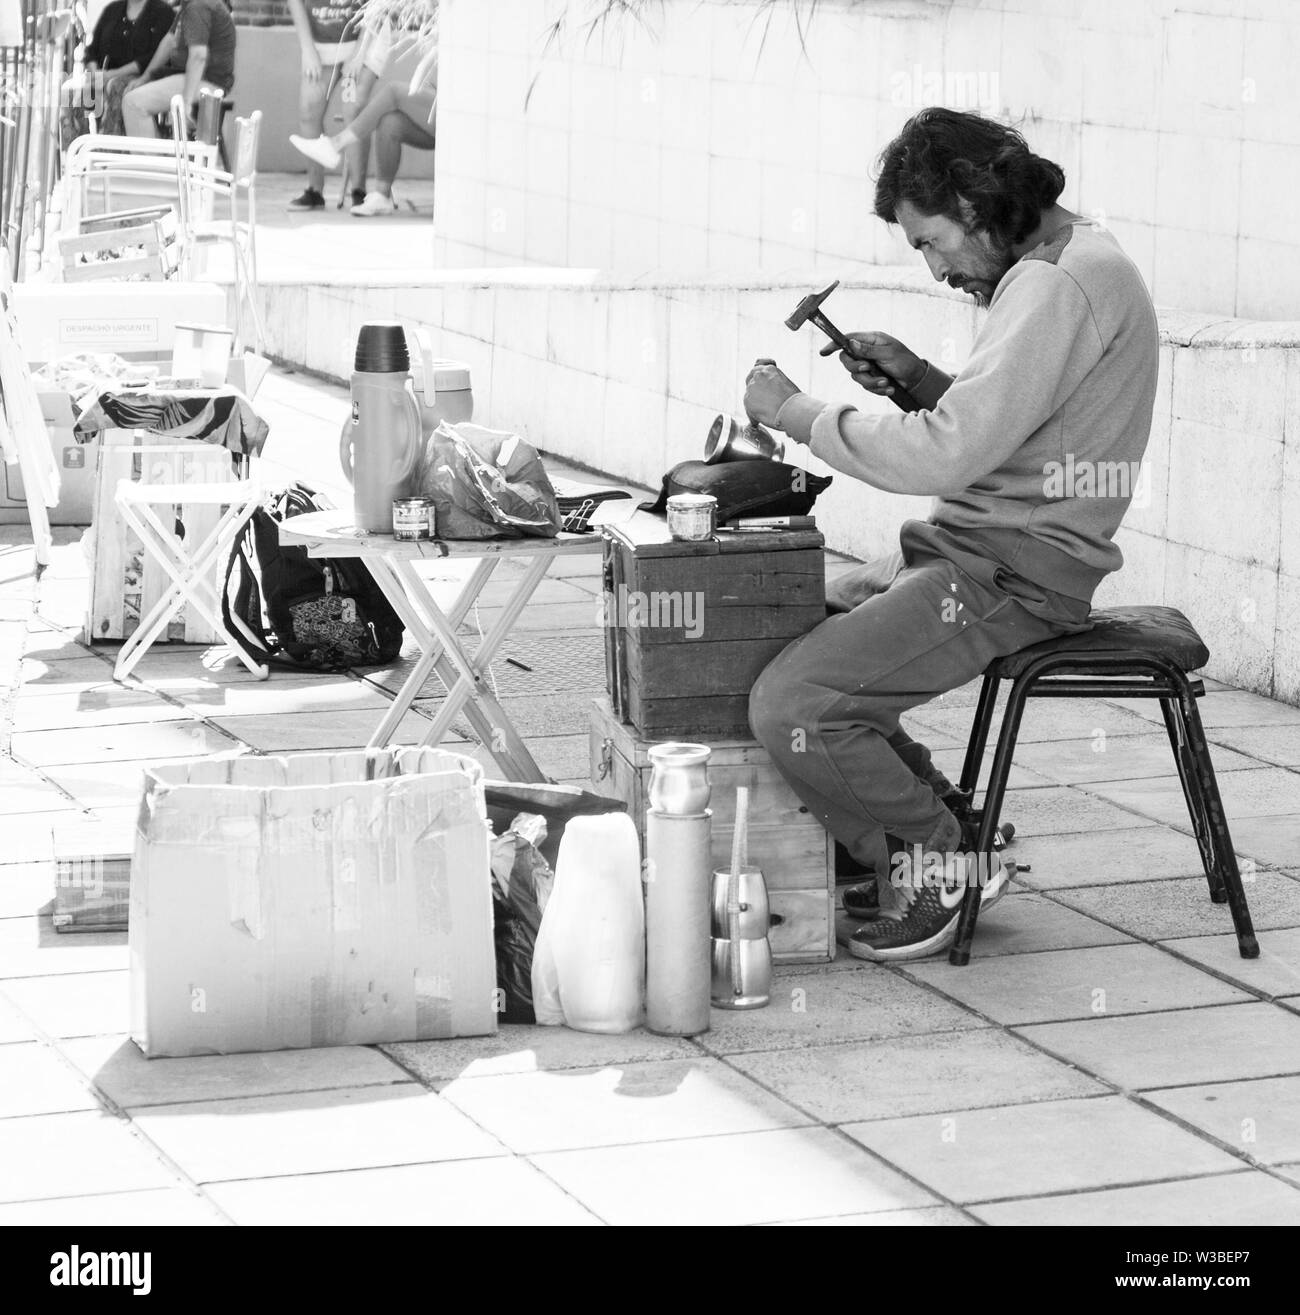 Buenos Aires, Argentina. July 14, 2019. Street craftsman, engraver. Engraves the inscriptions on the vessels for mate tea. Stock photo - Stock Image